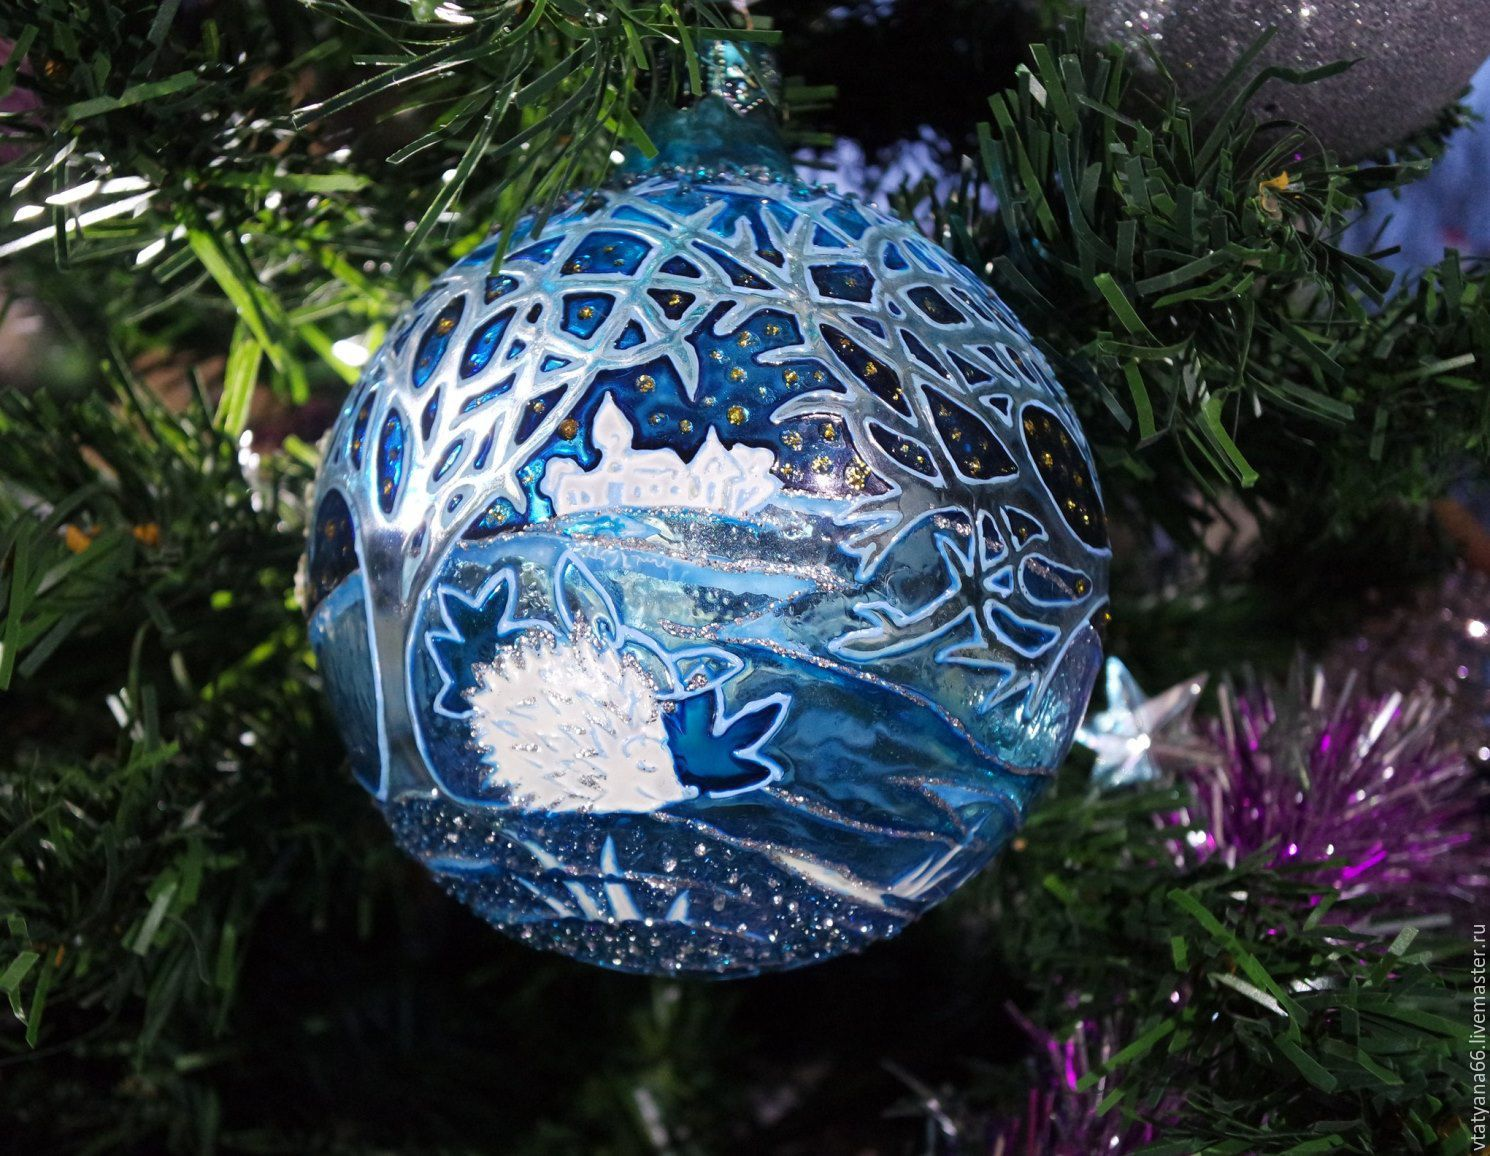 Handmade glass christmas ornaments - New Year 2017 Handmade Glass Christmas Ball With Stained Glass Painted Blue Forest Paint